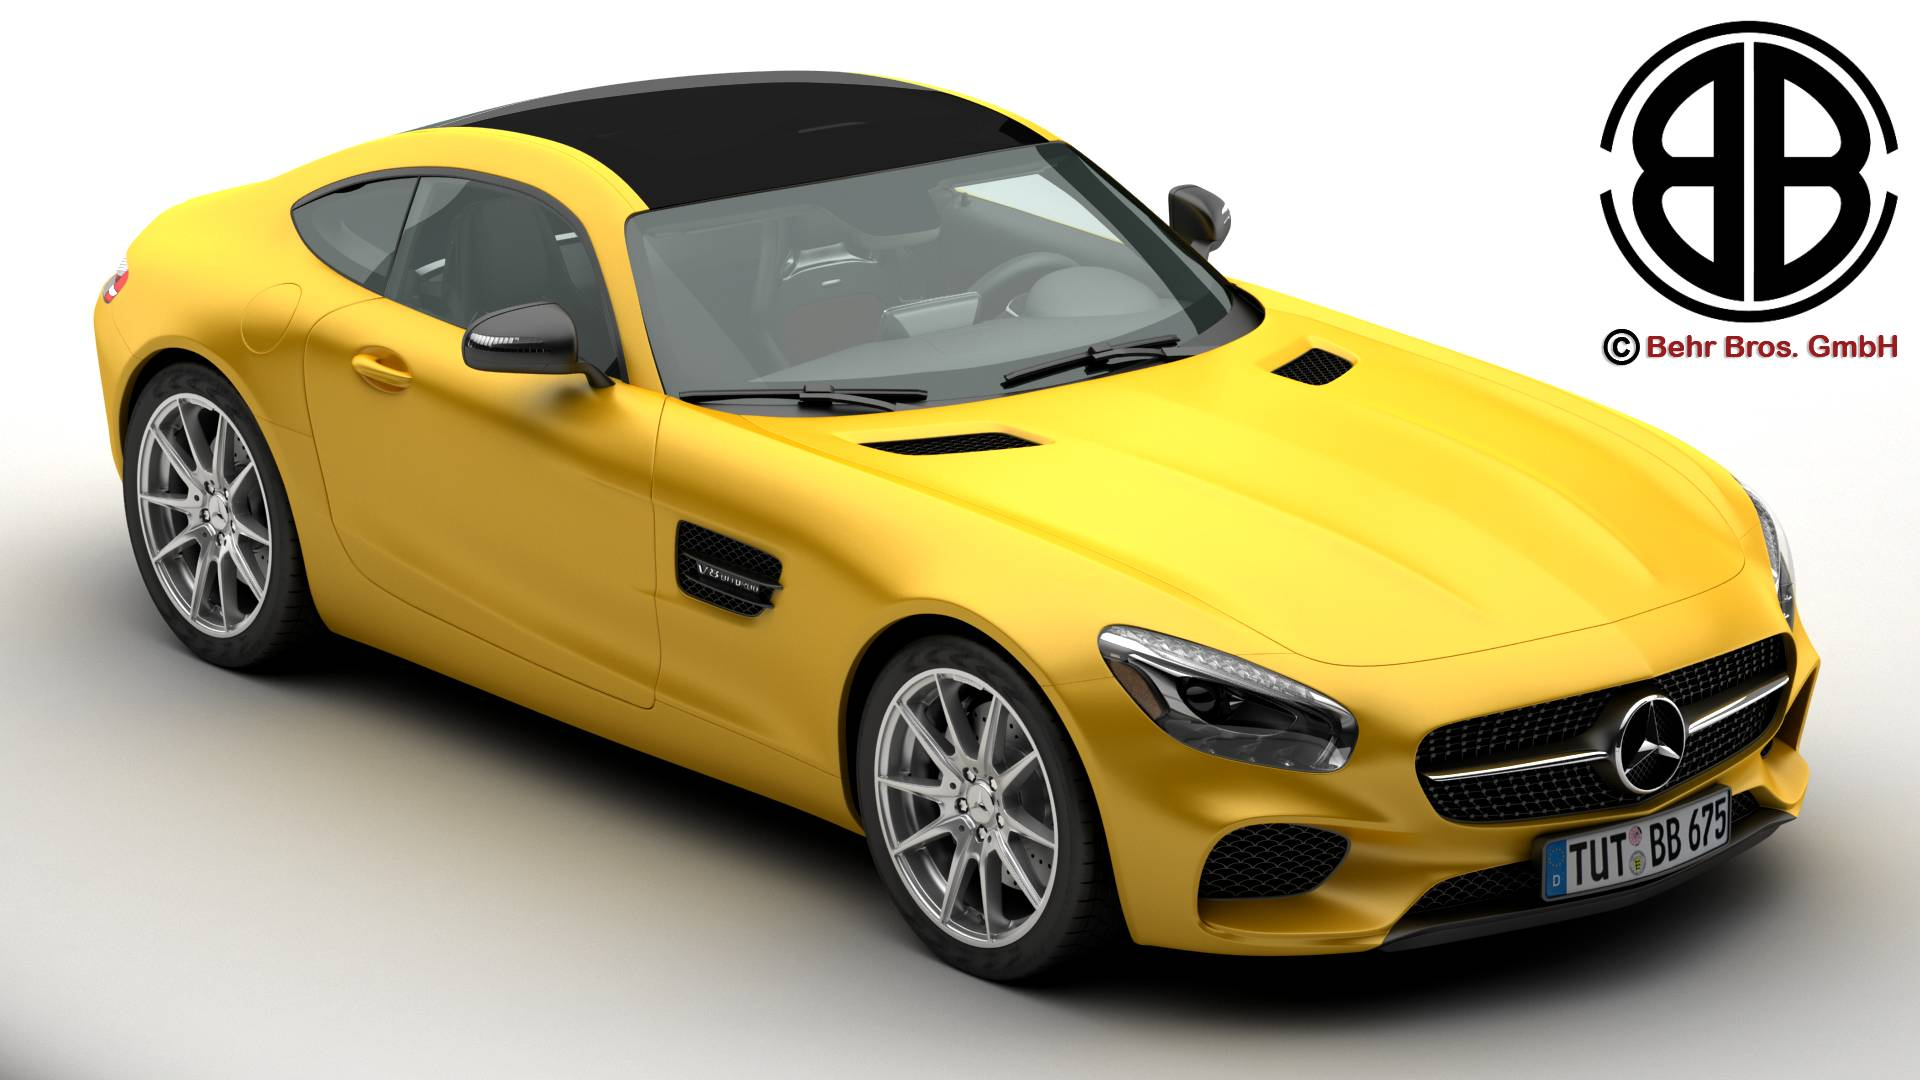 mercedes amg gt 2015 eu and us version 3d model 3ds max fbx c4d lwo ma mb obj 210112